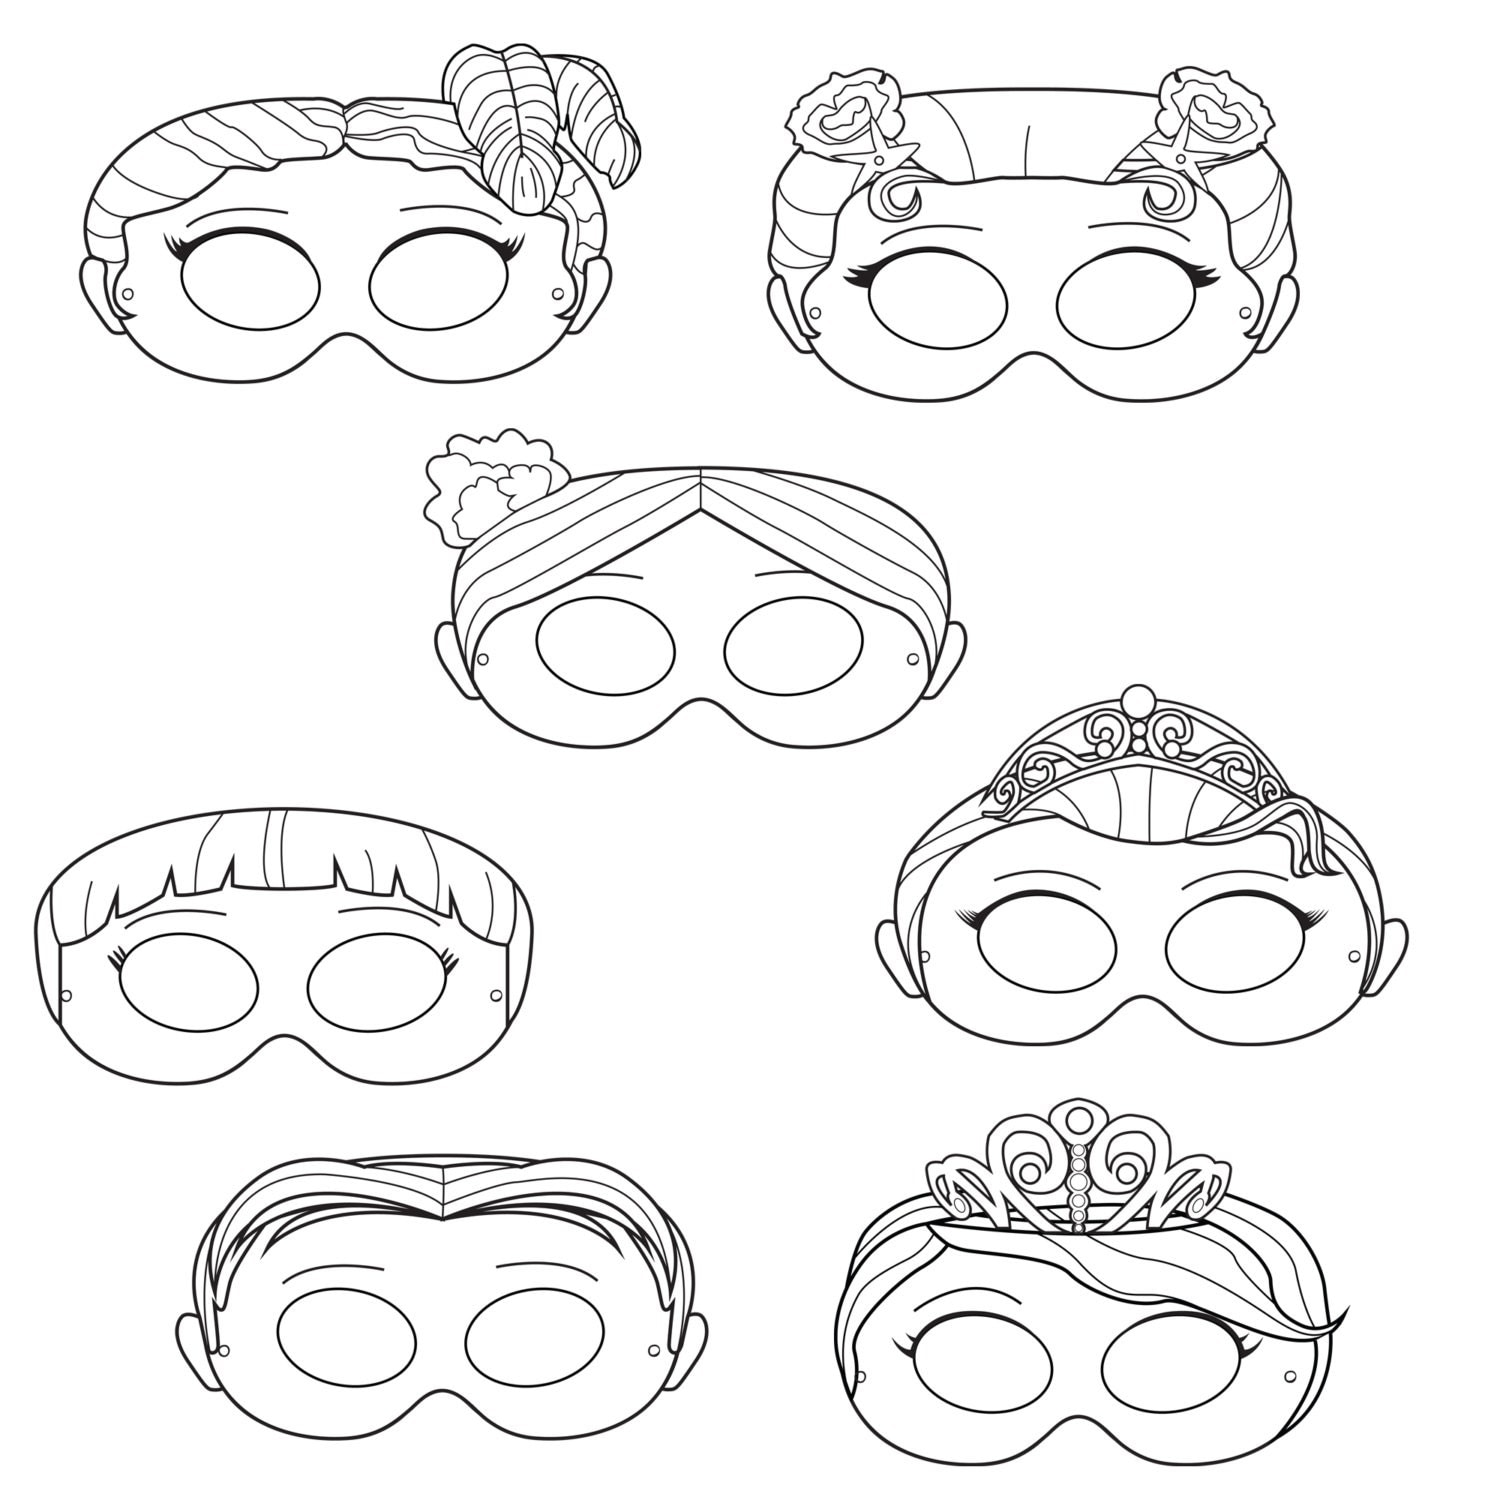 Impertinent image intended for mask printable